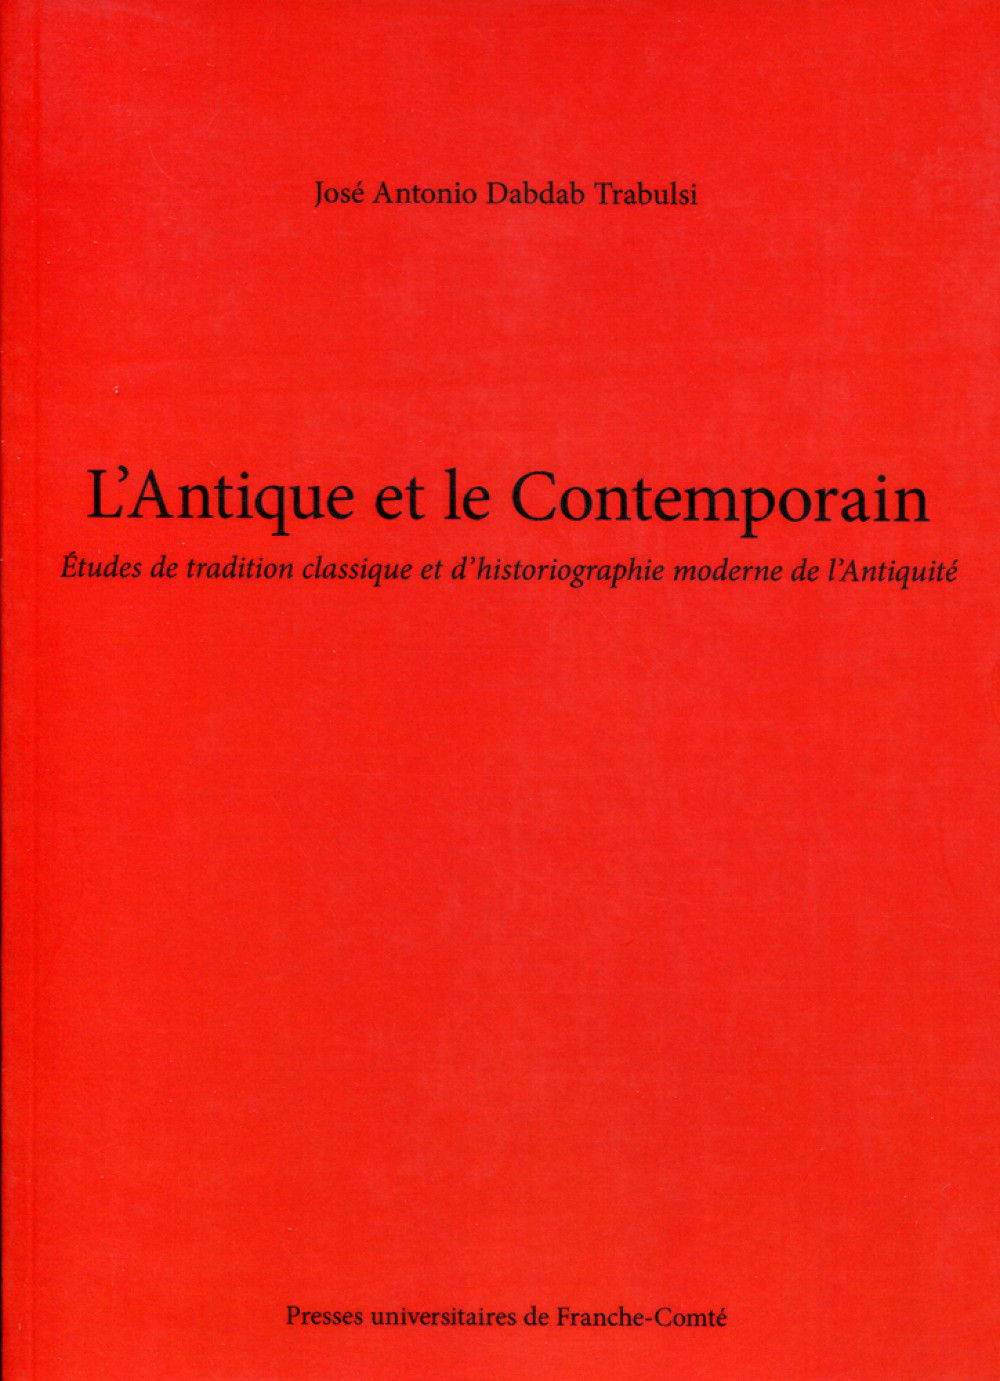 L'Antique et le Contemporain